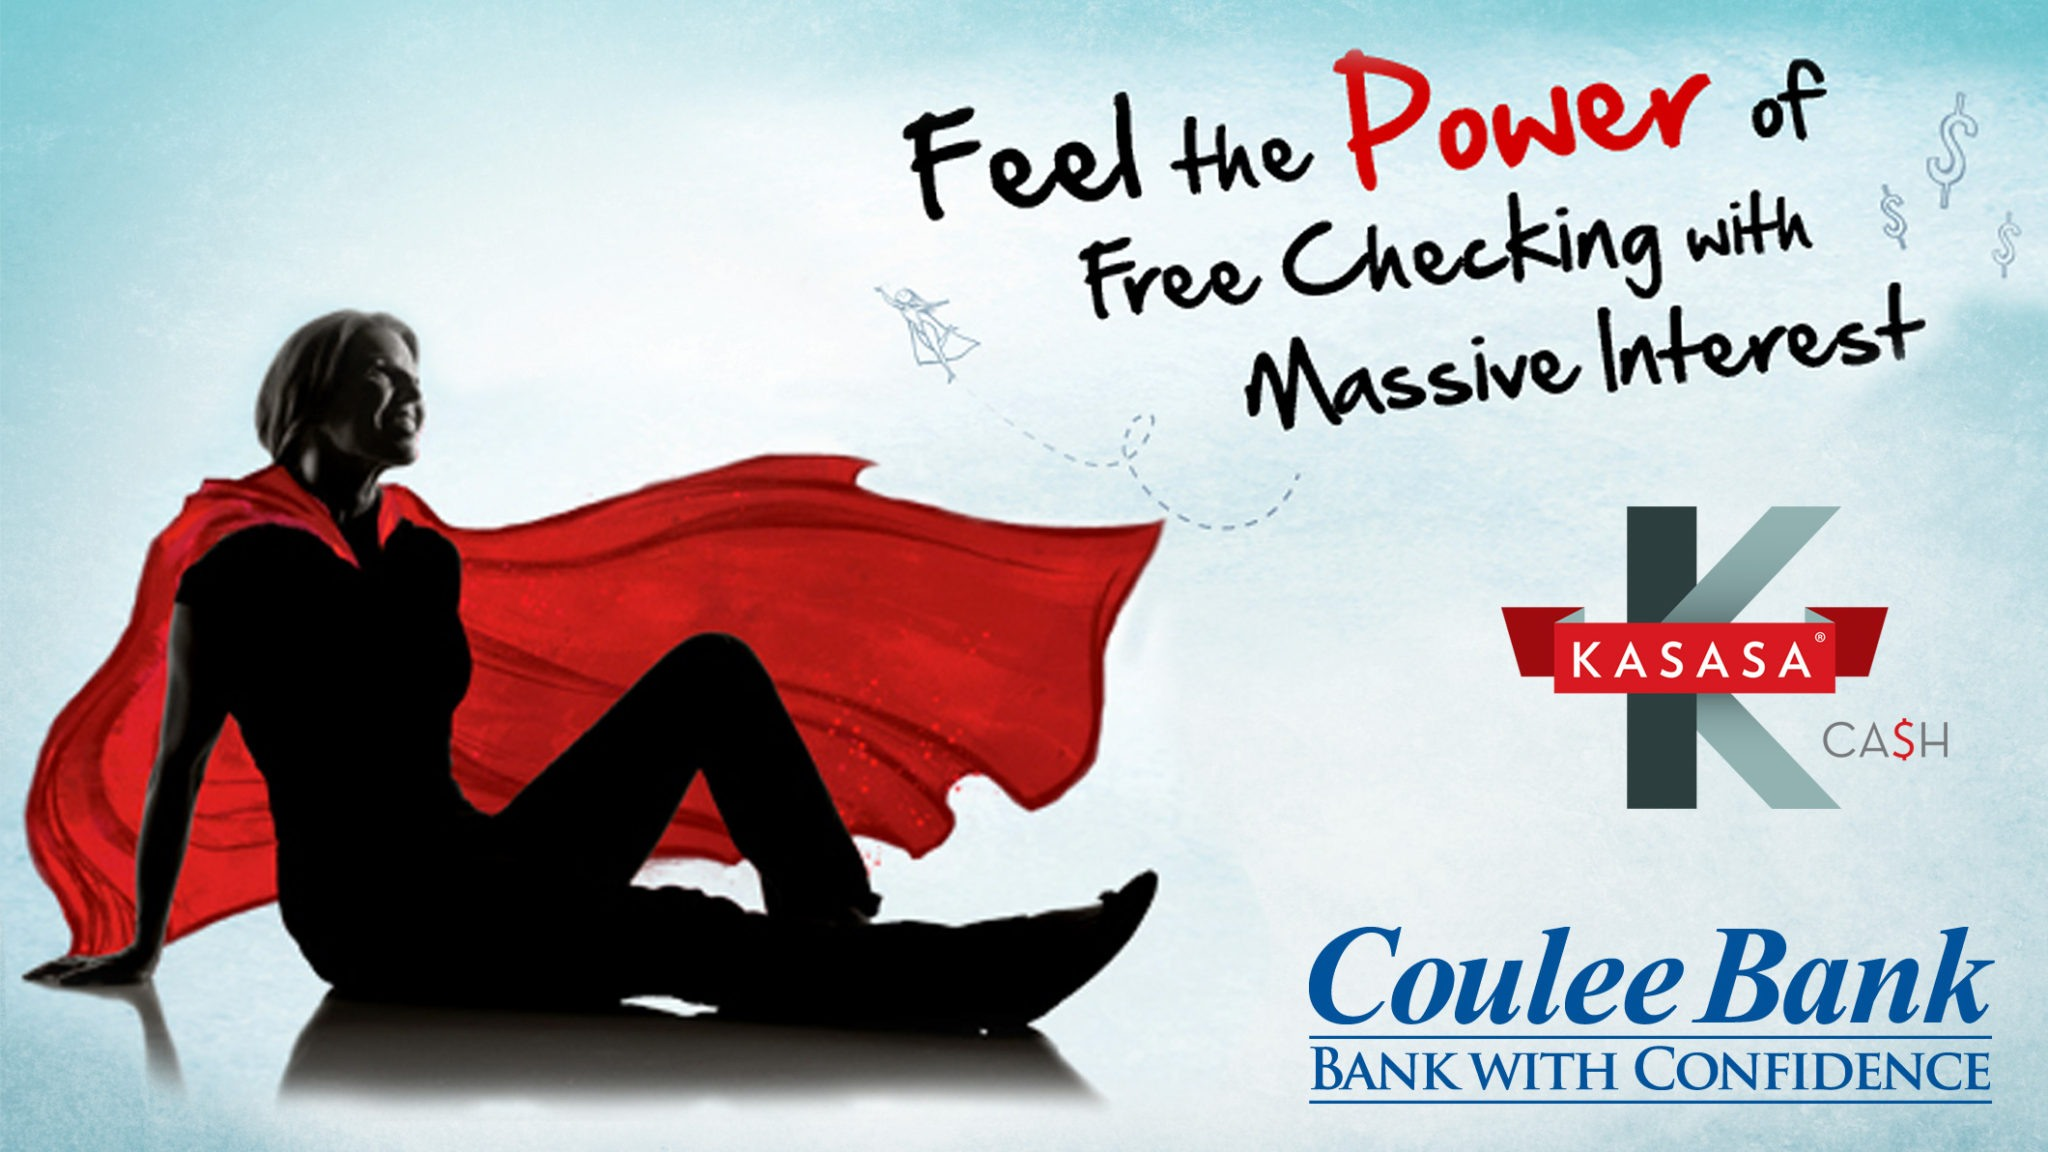 Coulee Bank Google Plus Cover